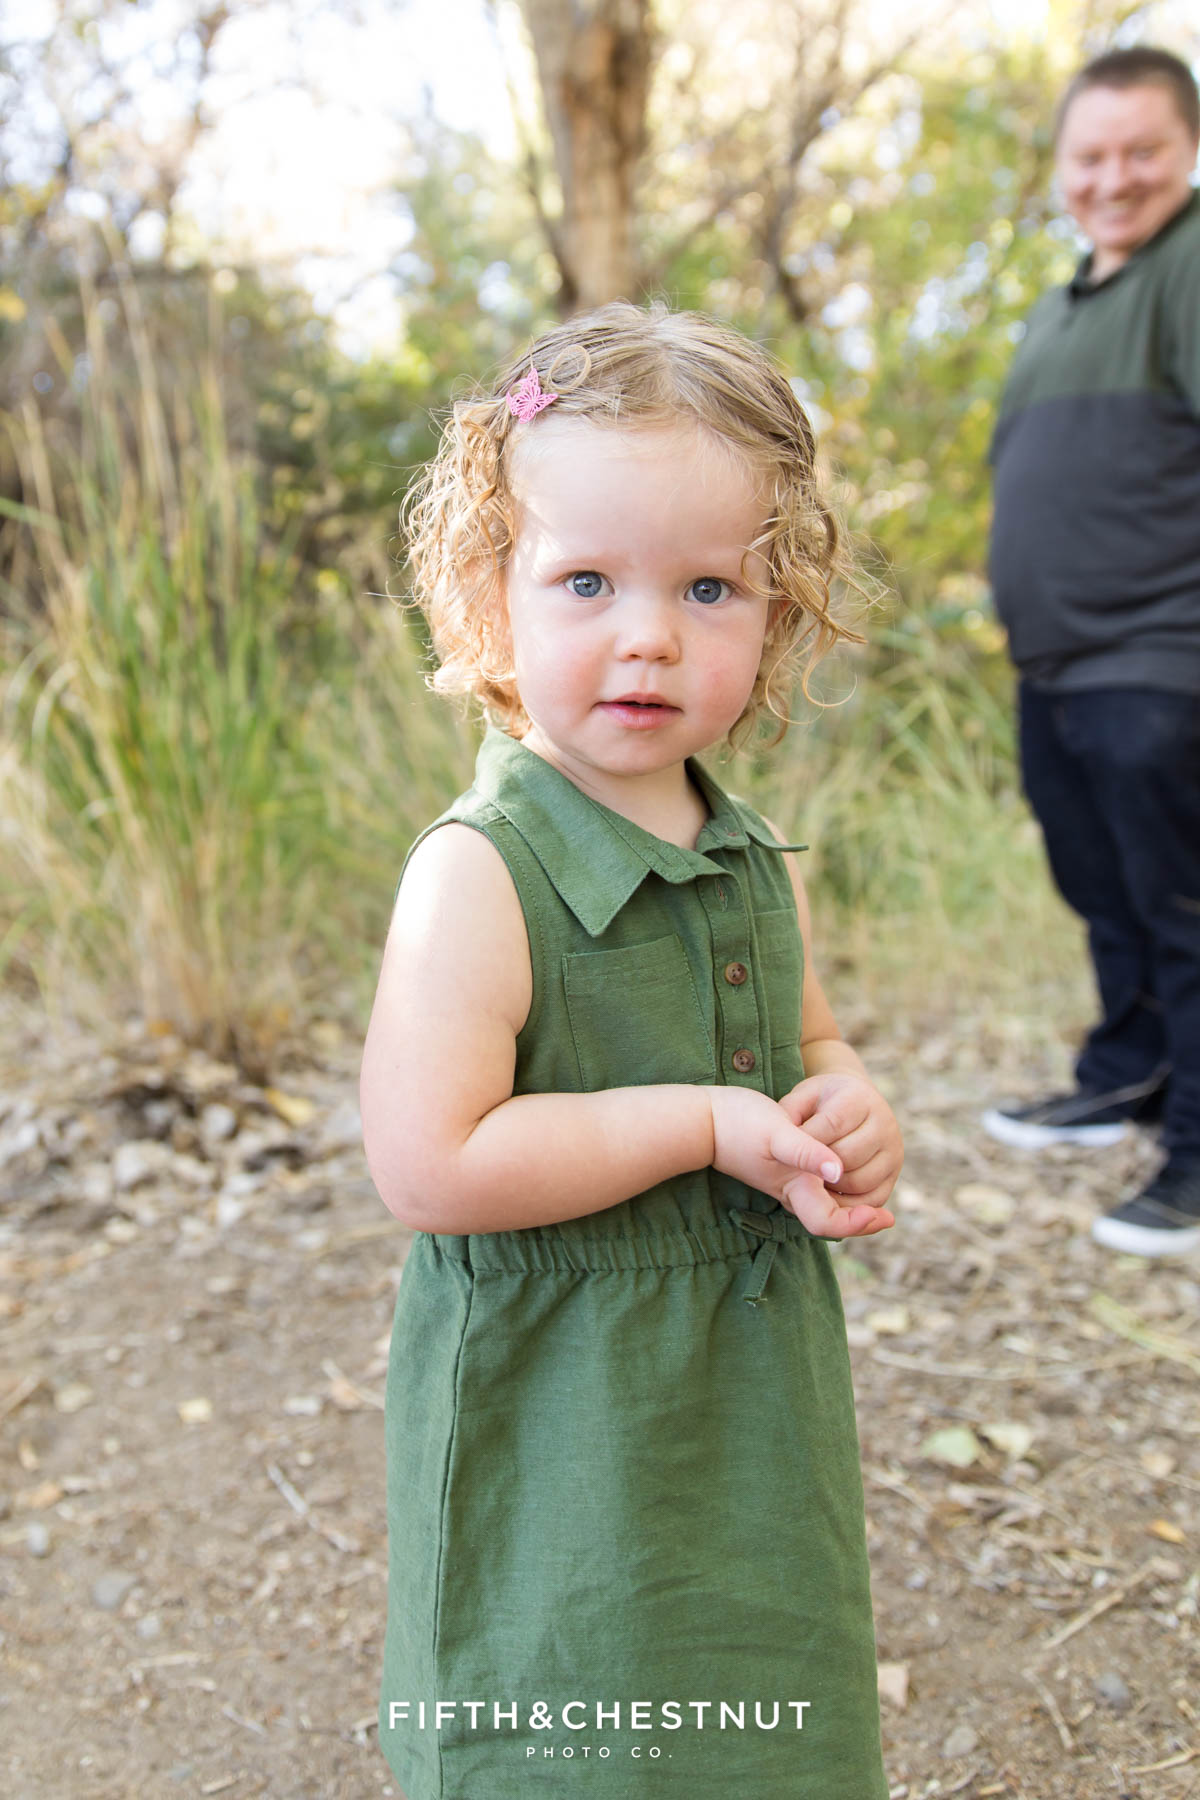 Child gazes at photographer during her earthtone family portraits in October in Reno